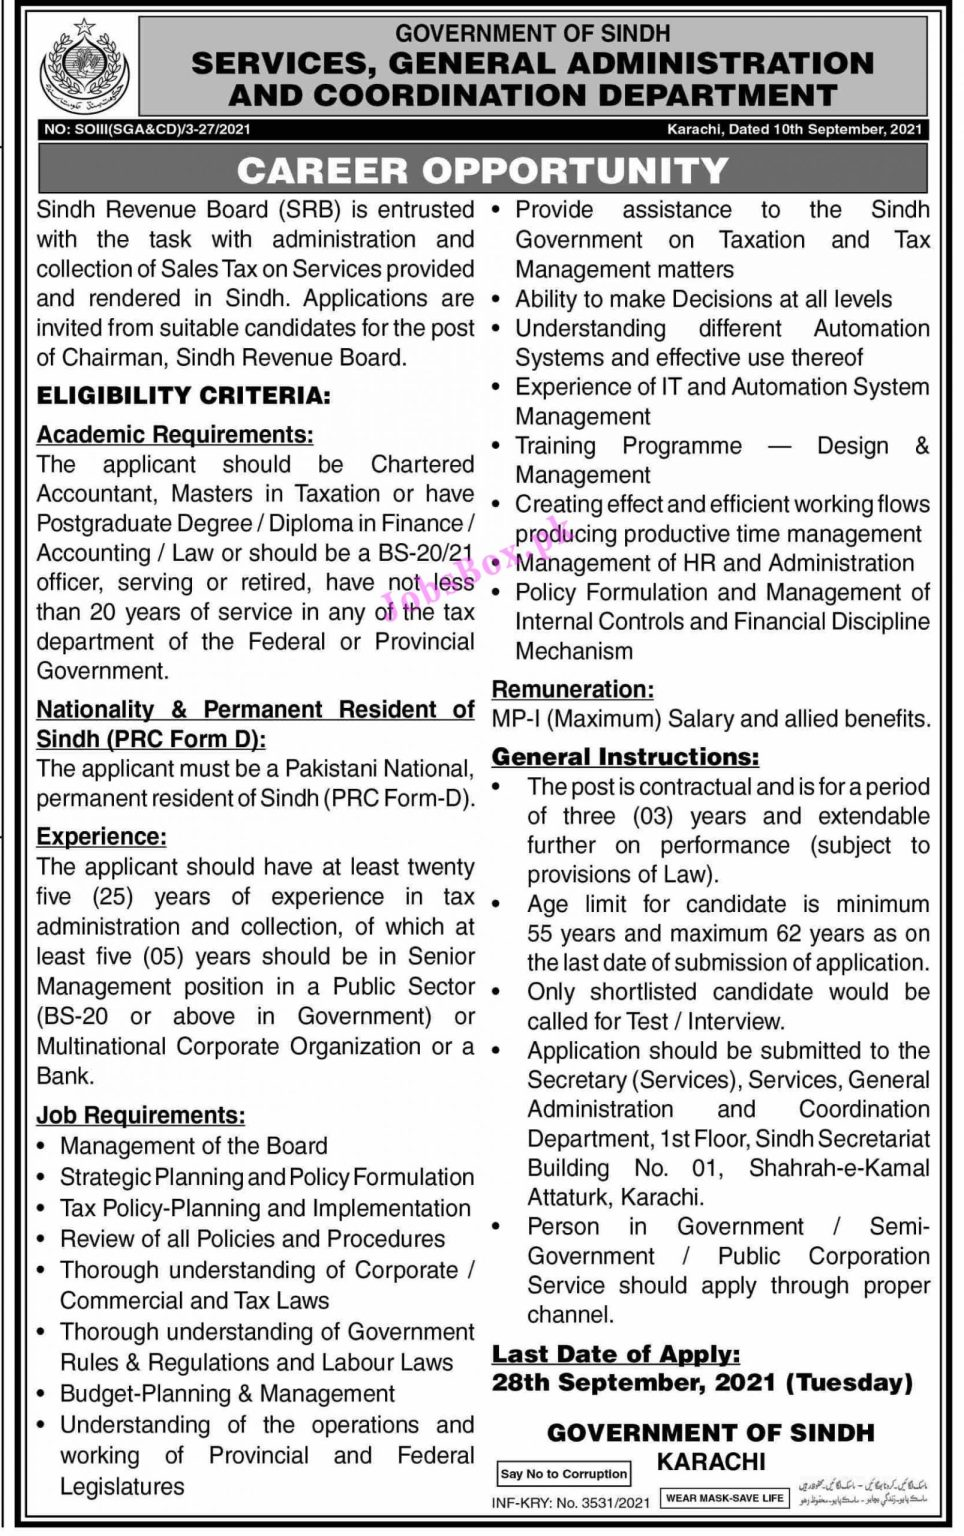 Latest Services and General Administration Department Jobs Opportunities 2021